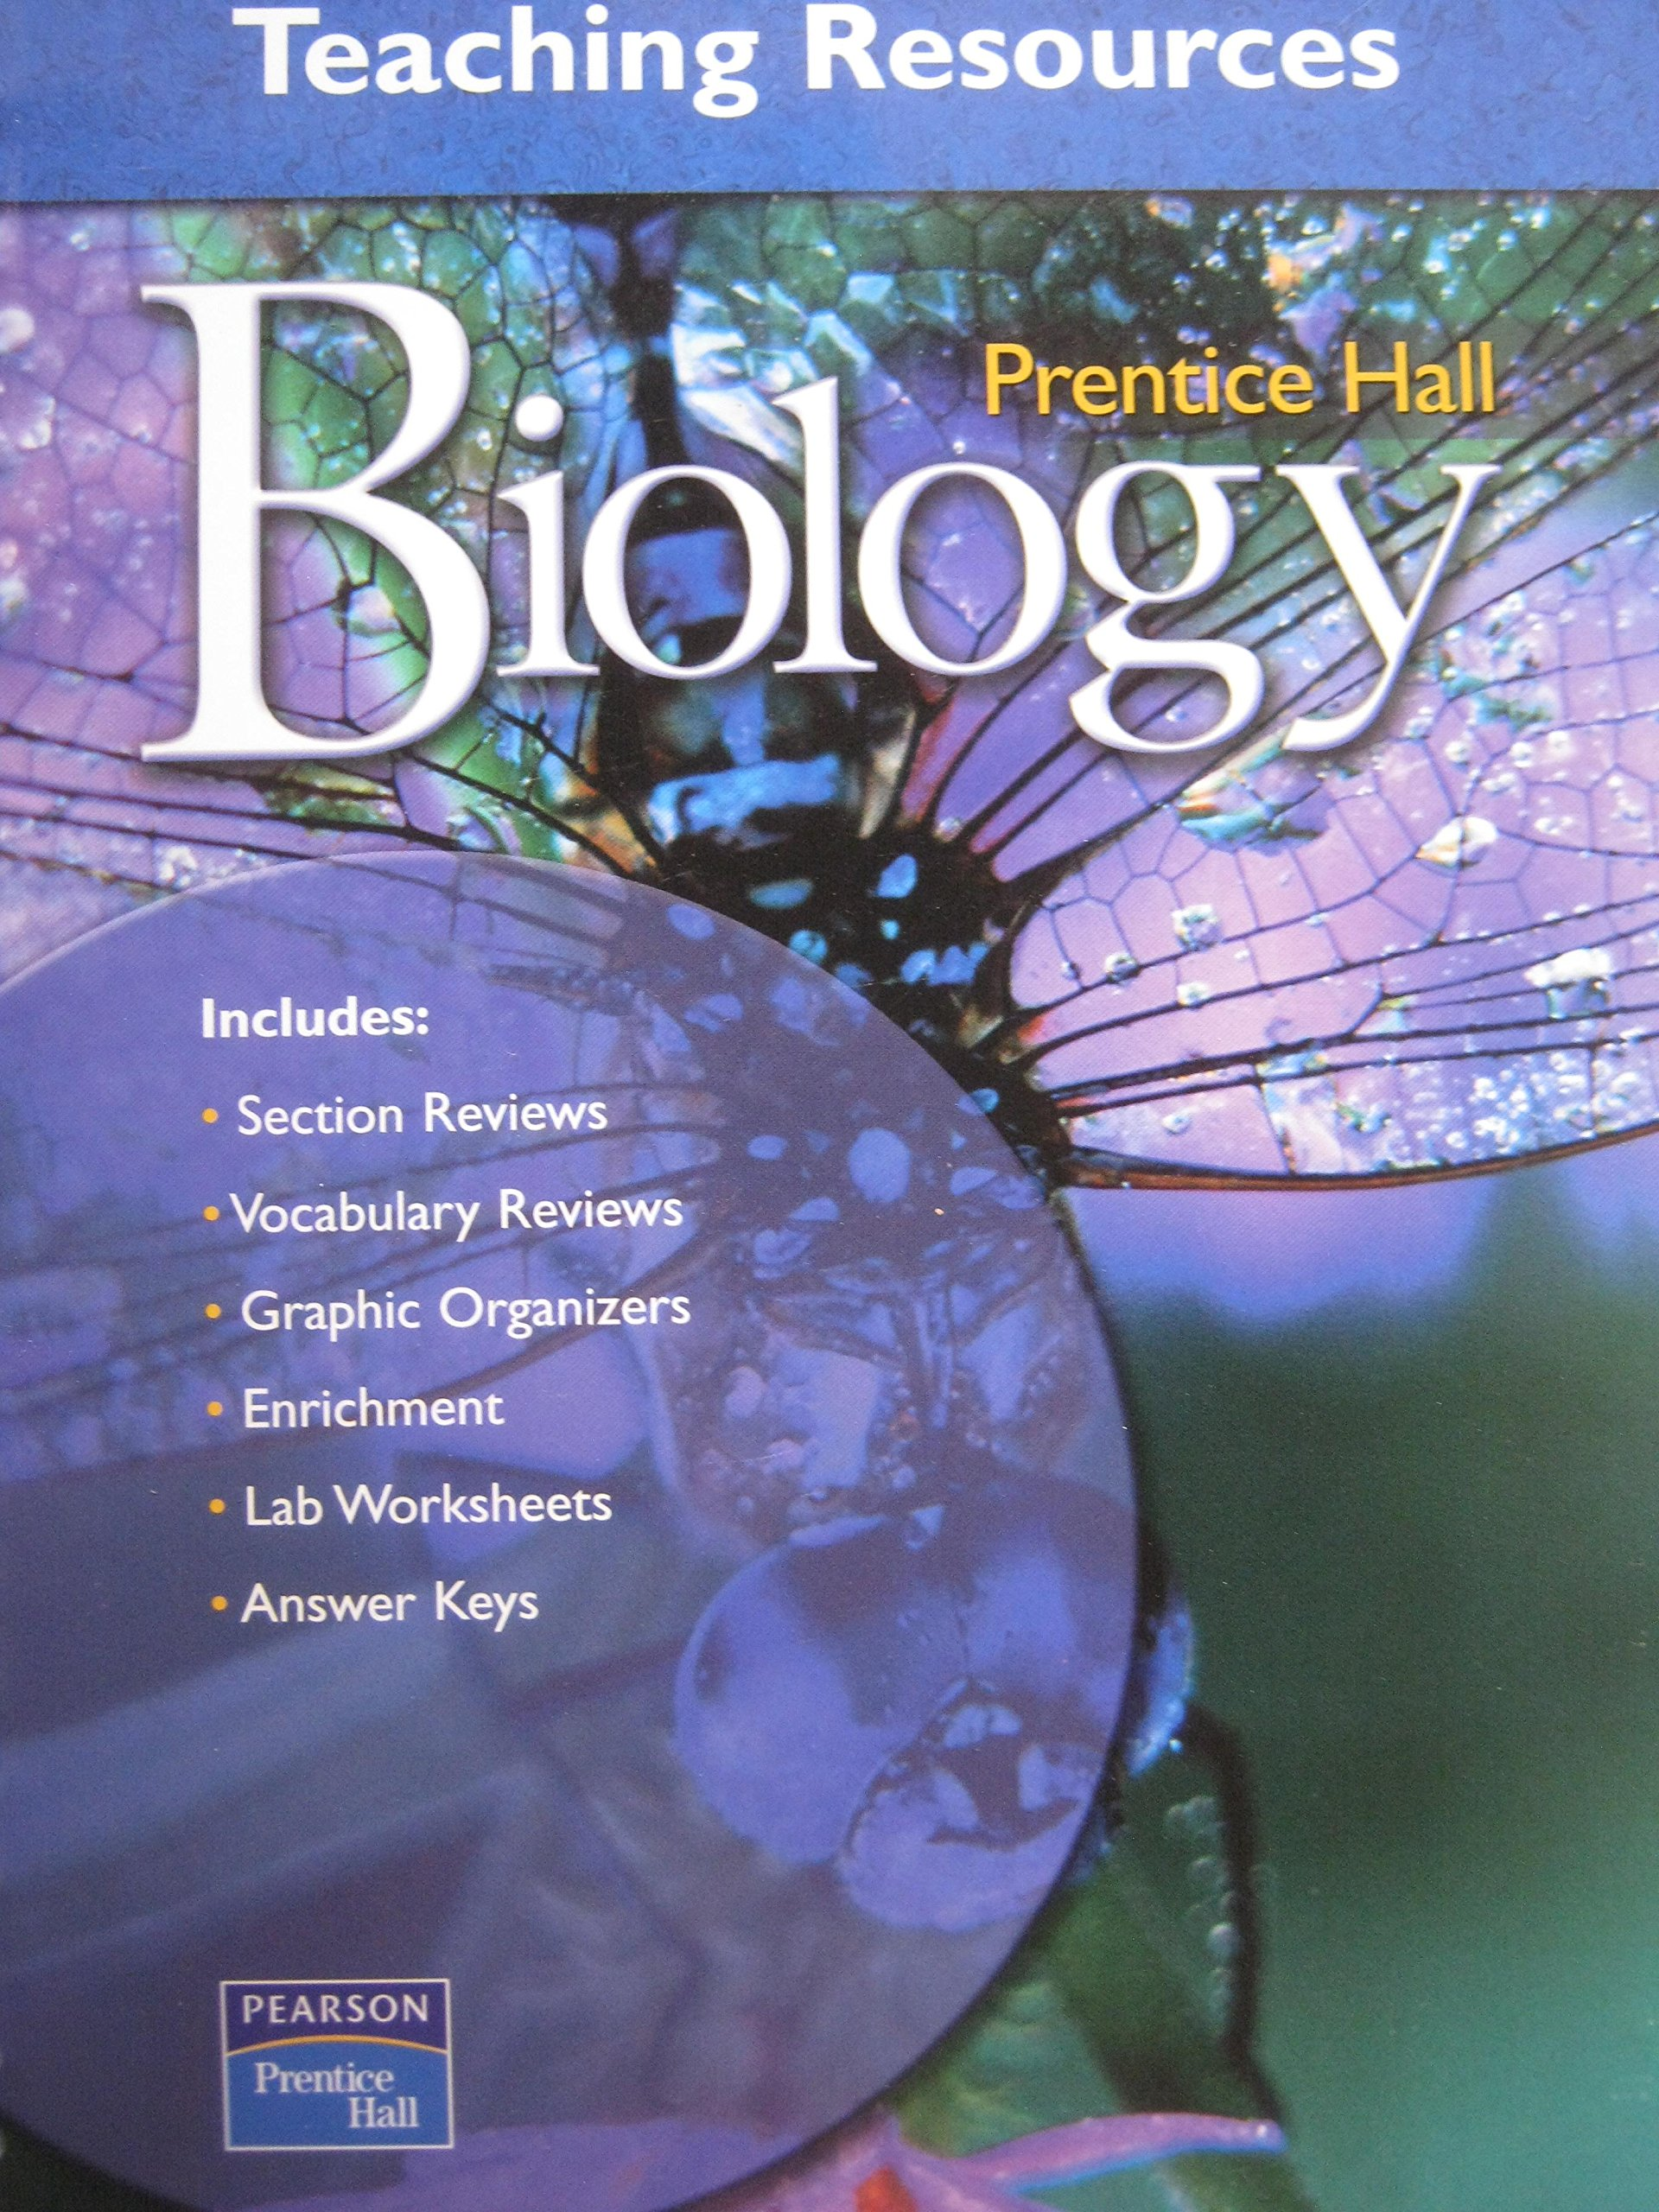 Biology Teaching Resources: Prentice Hall: 9780131155459